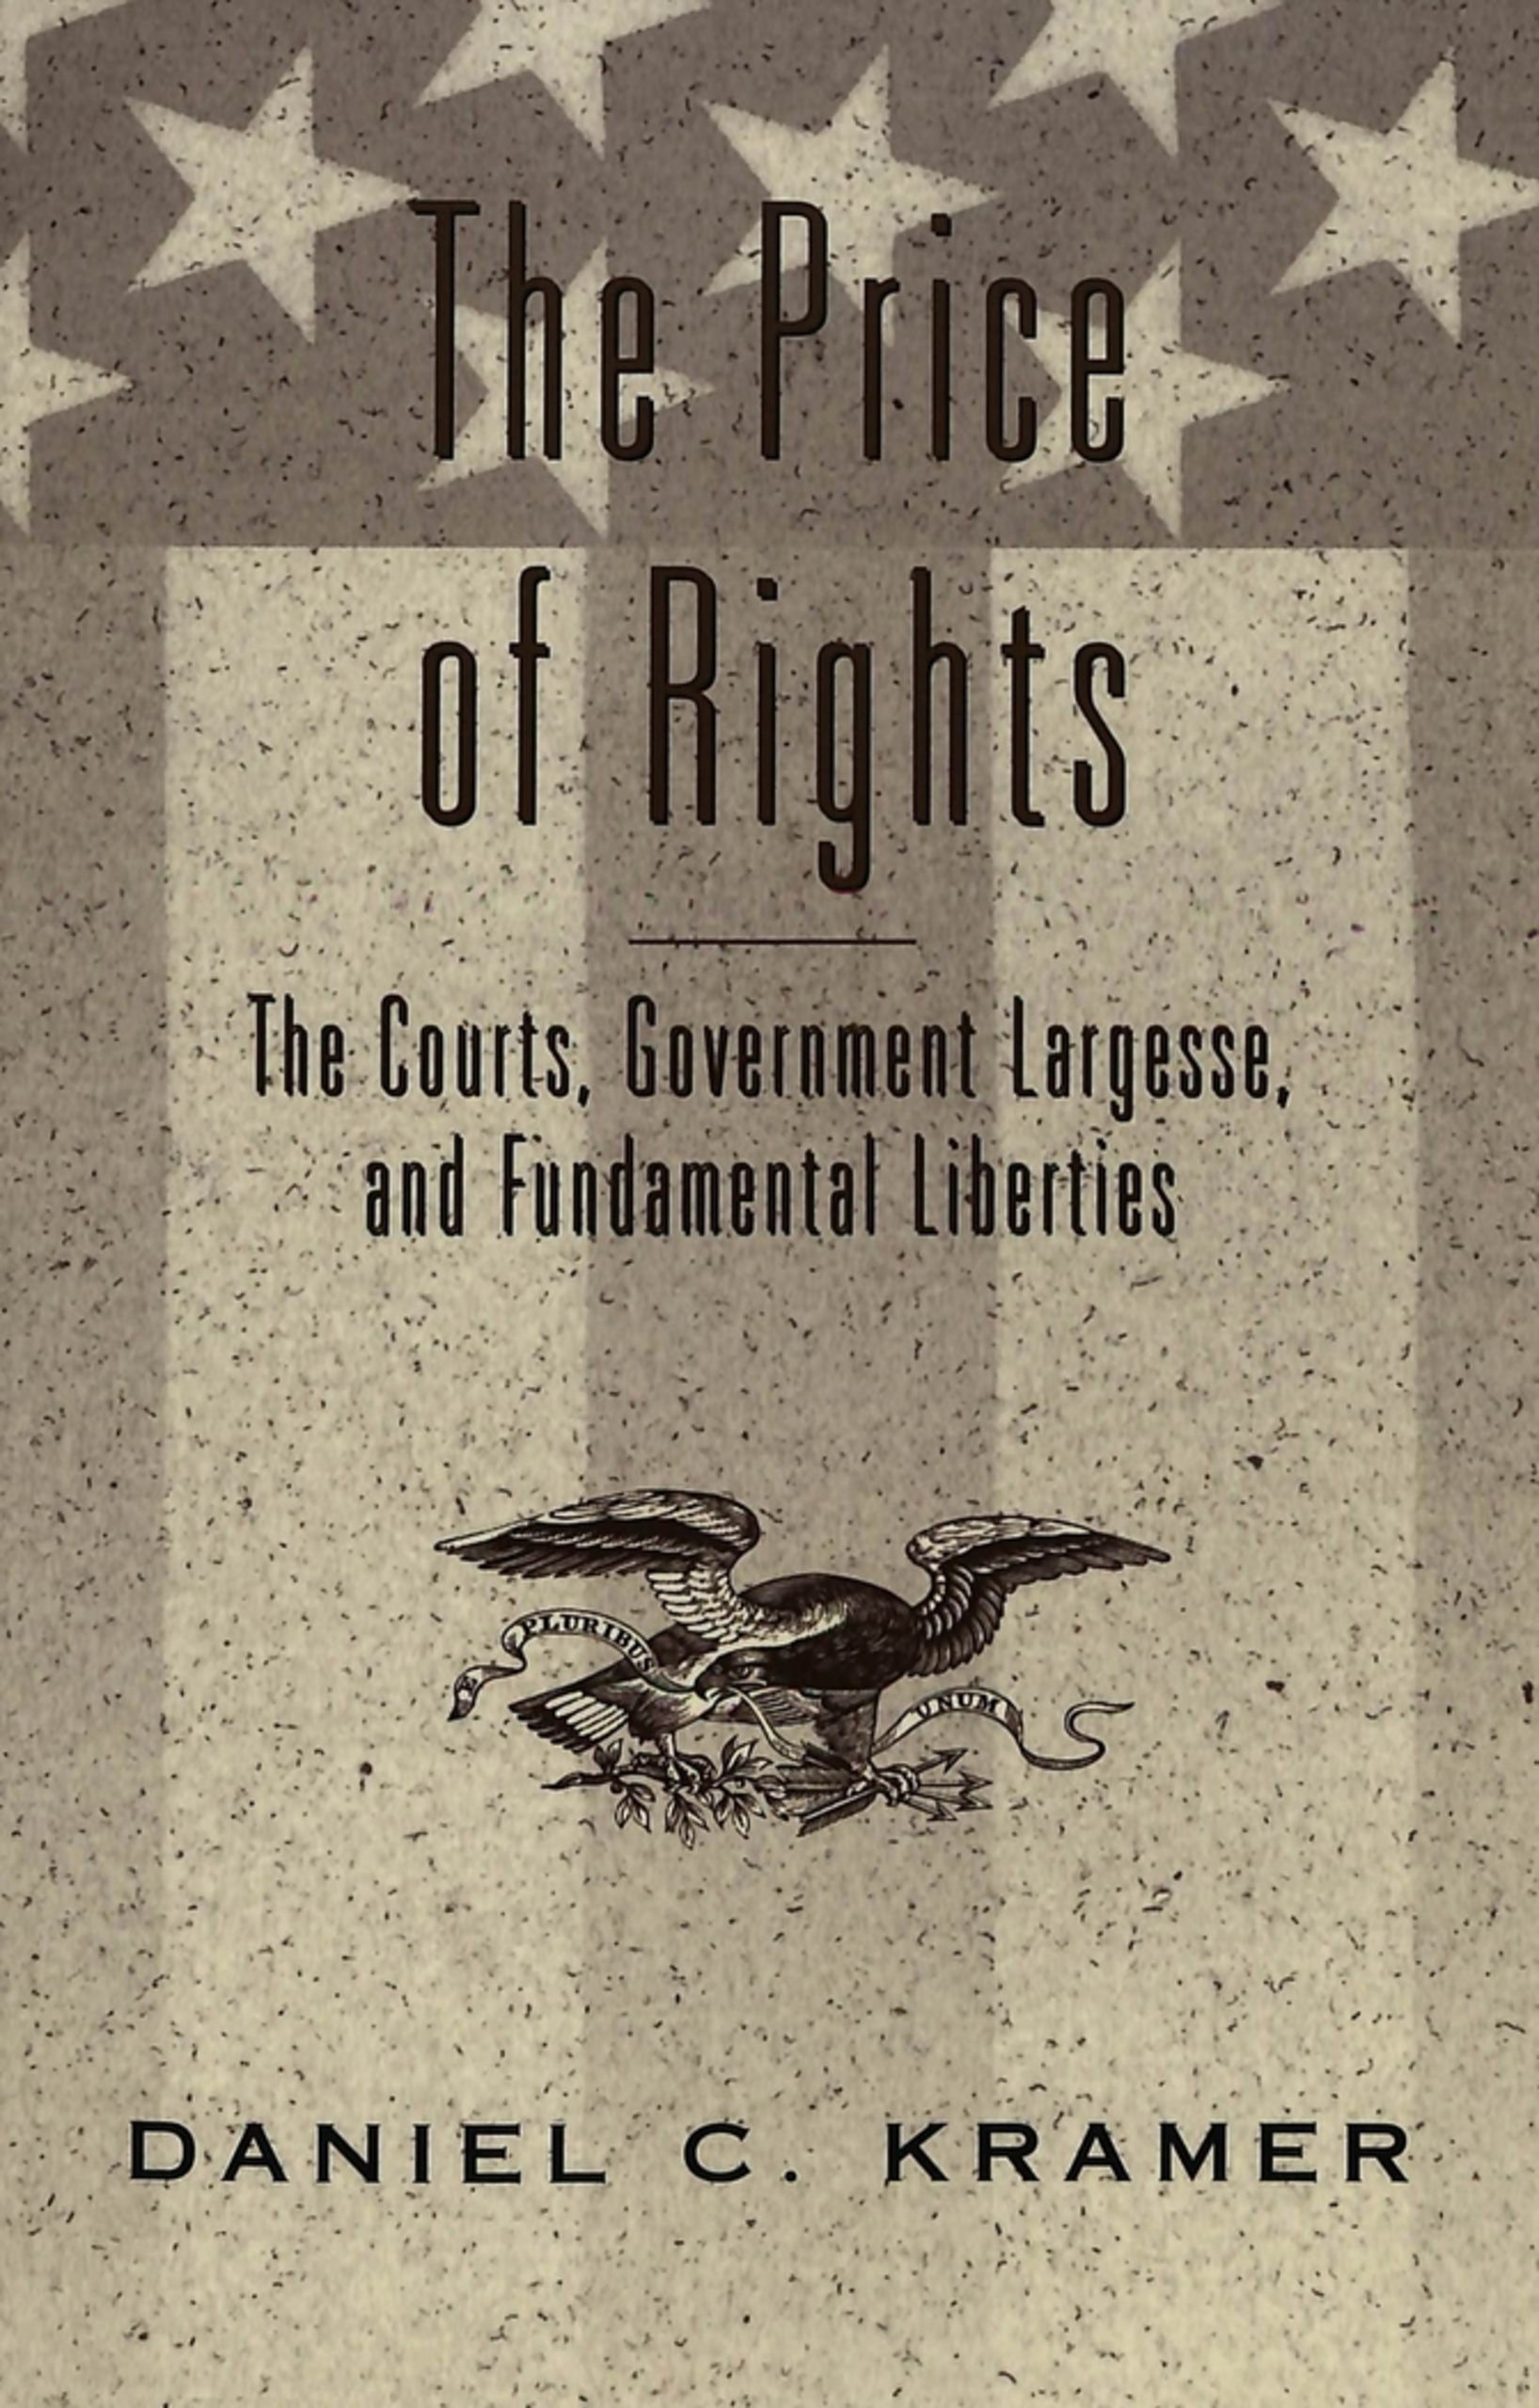 Title: The Price of Rights